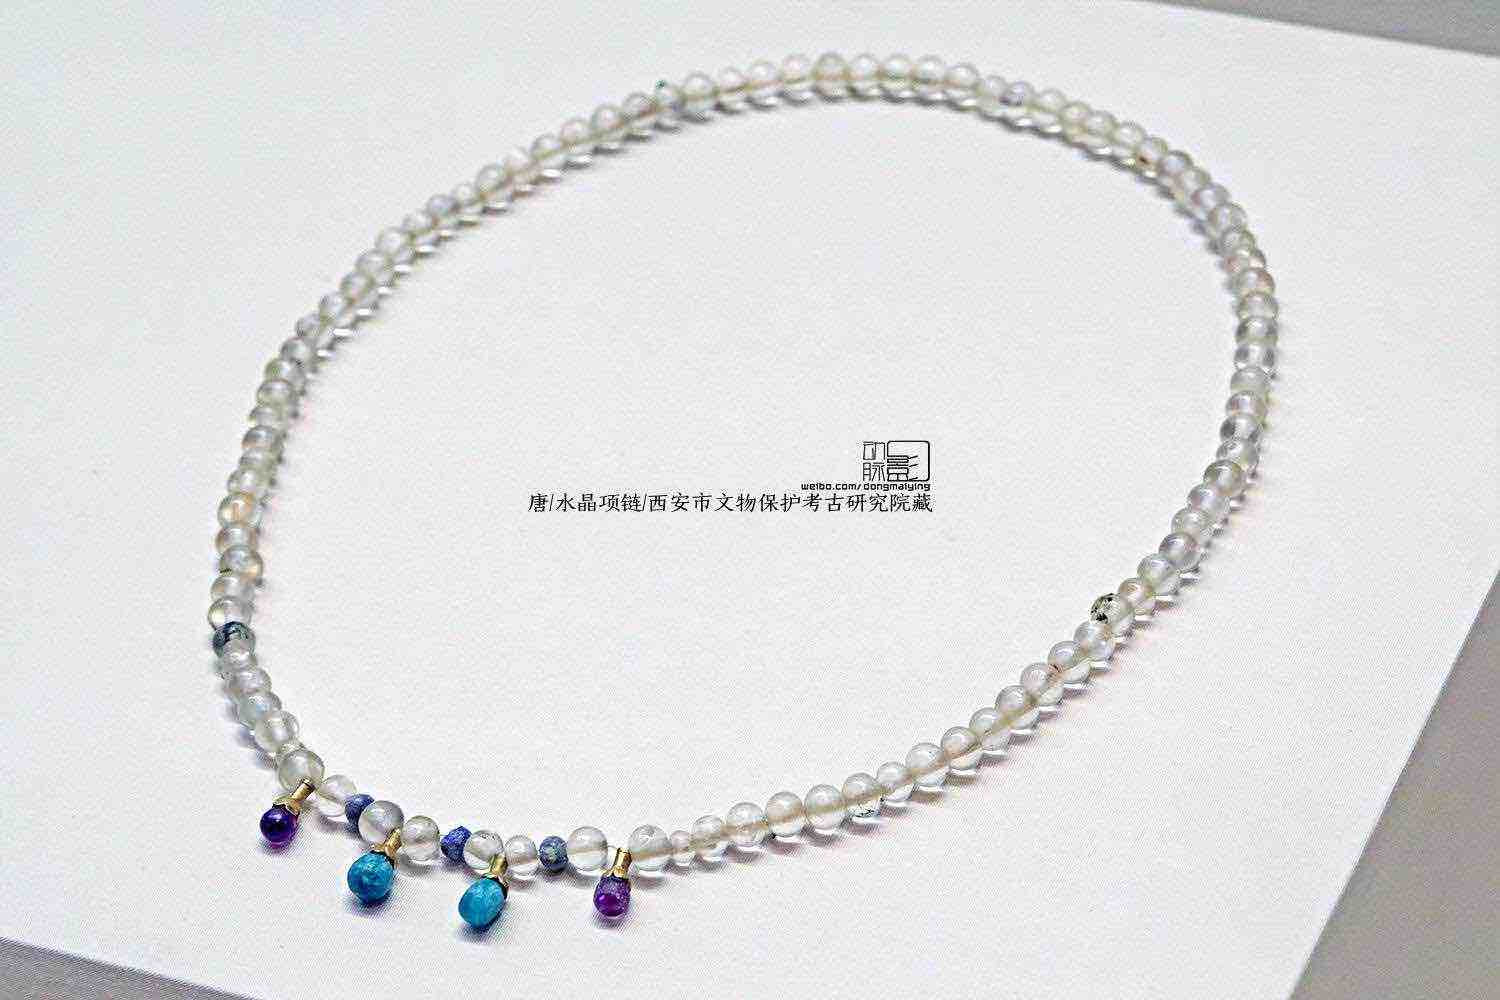 Crystal Necklace of the Tang Dynasty (618 — 907) — Xi'an Archaeology Institute (Photo by Dongmaiying)